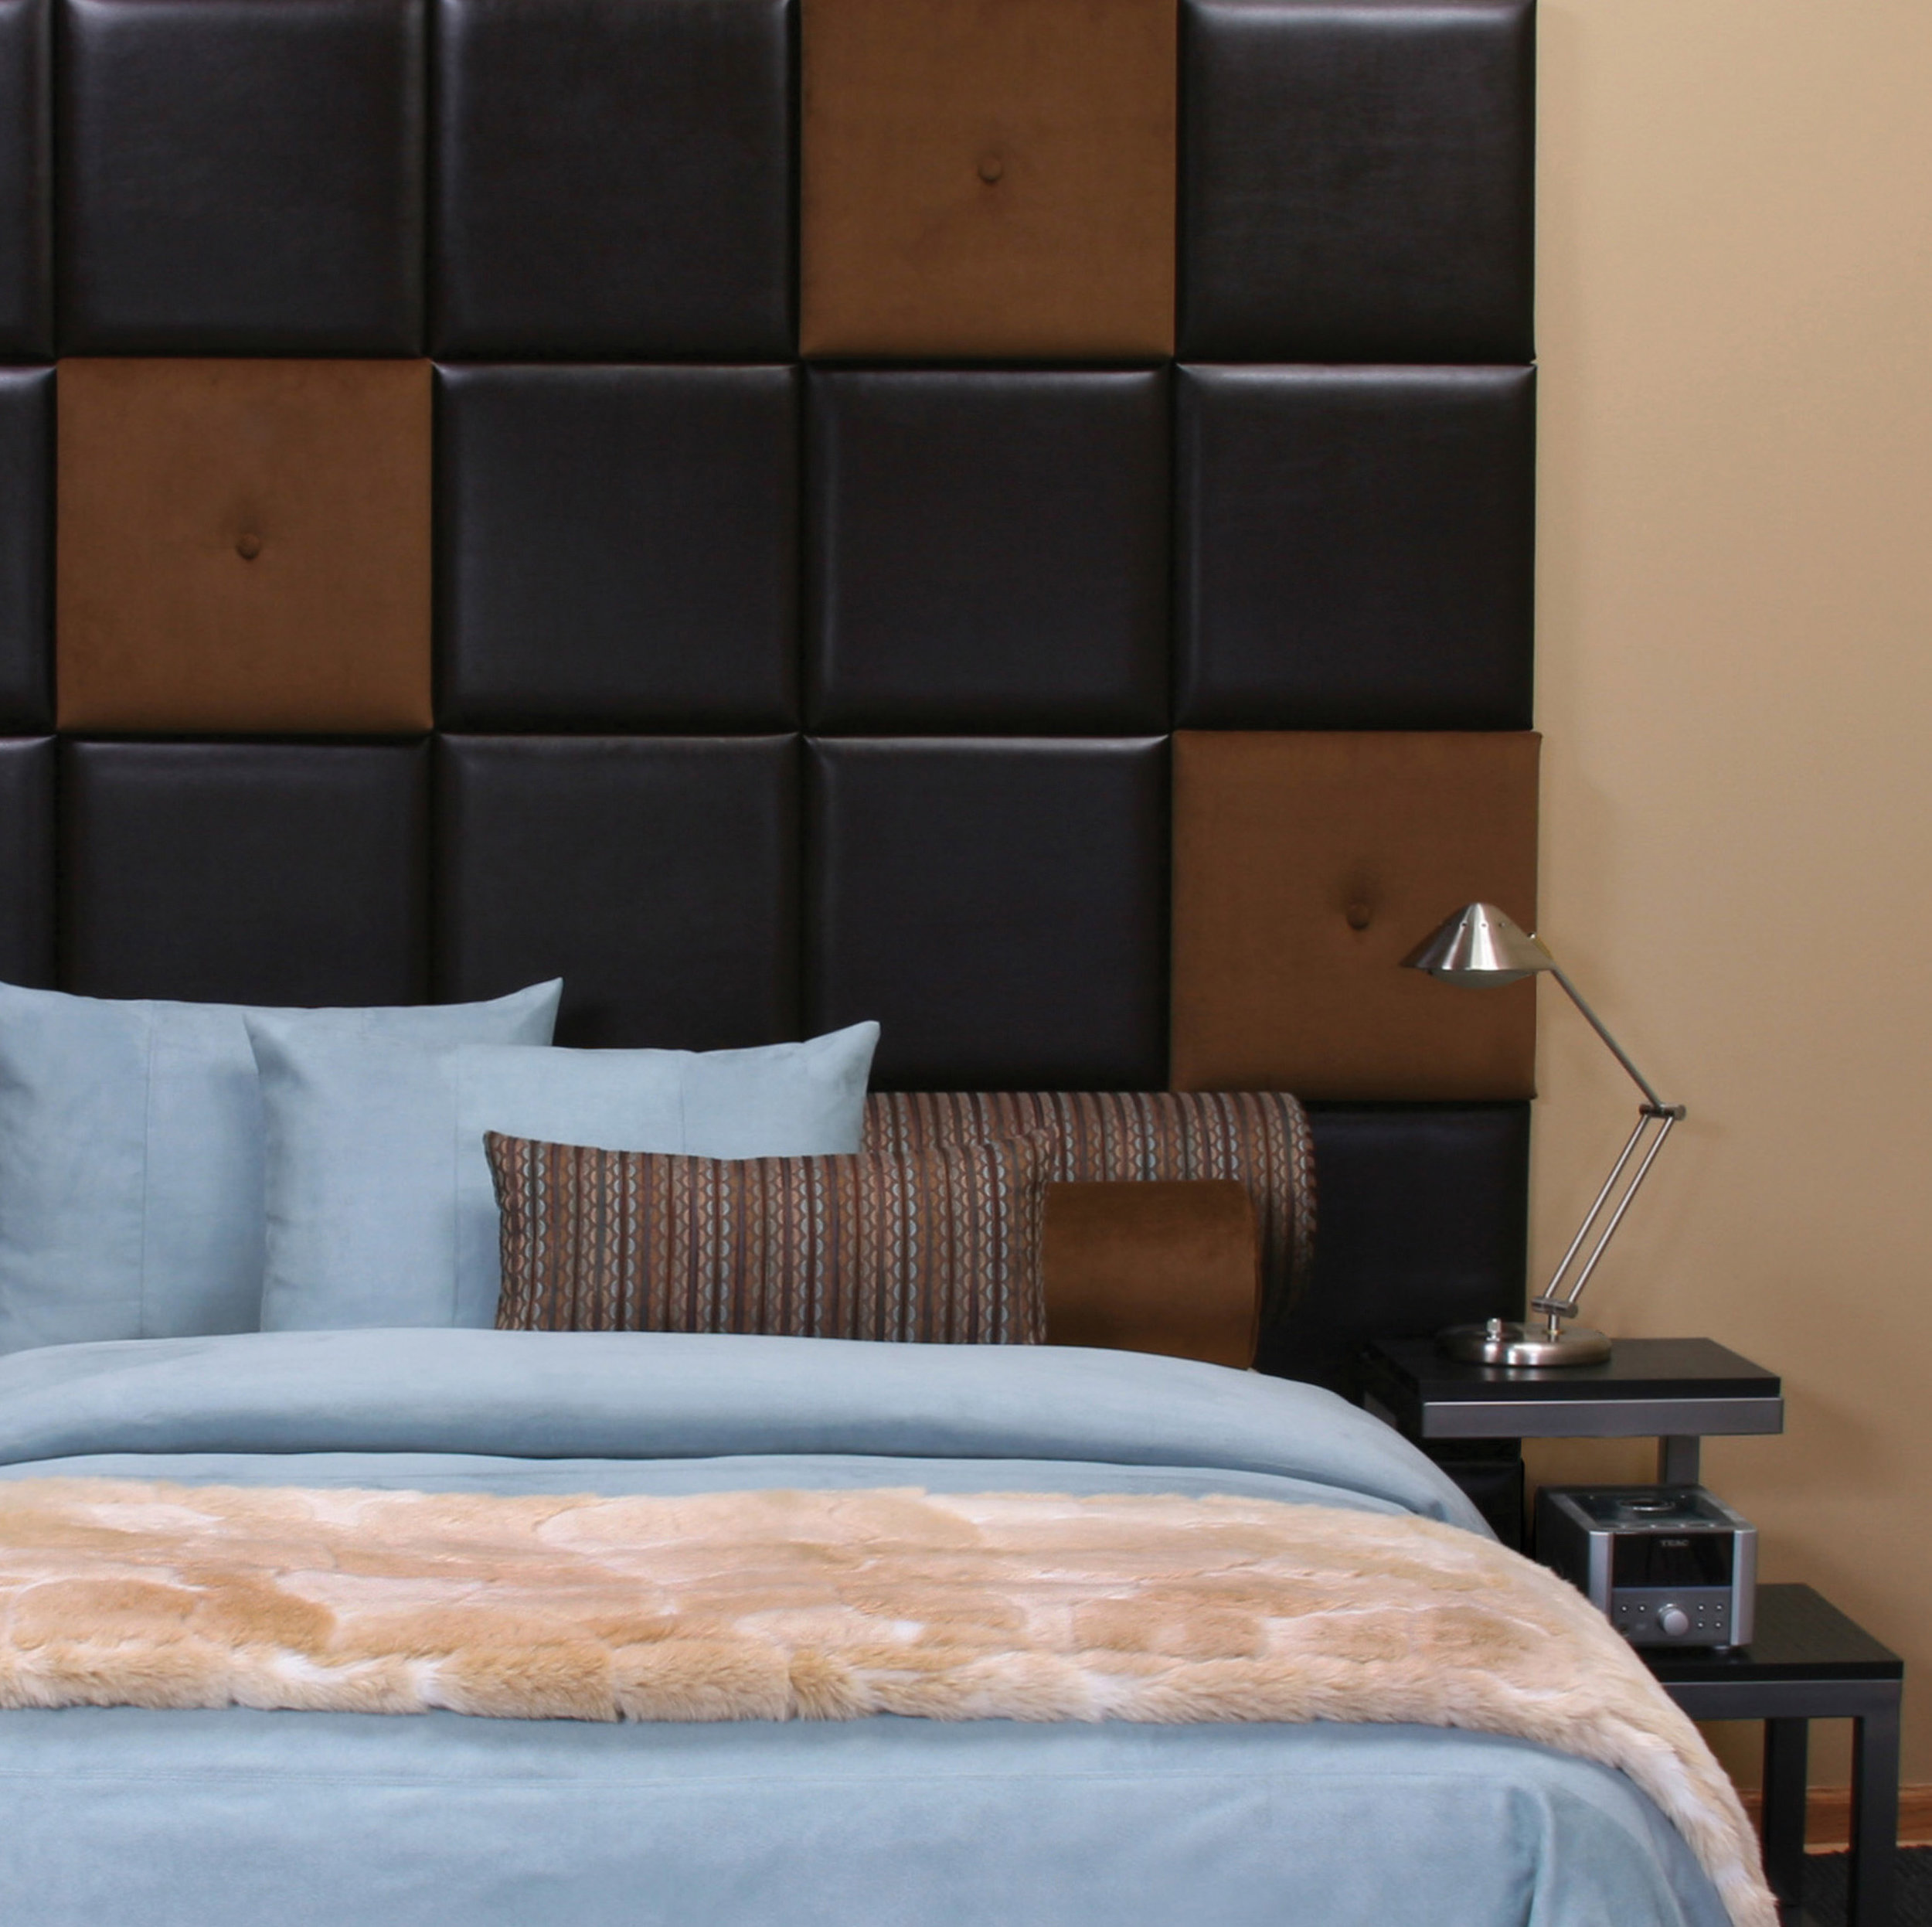 Wall Pixels as entire wall and headboard